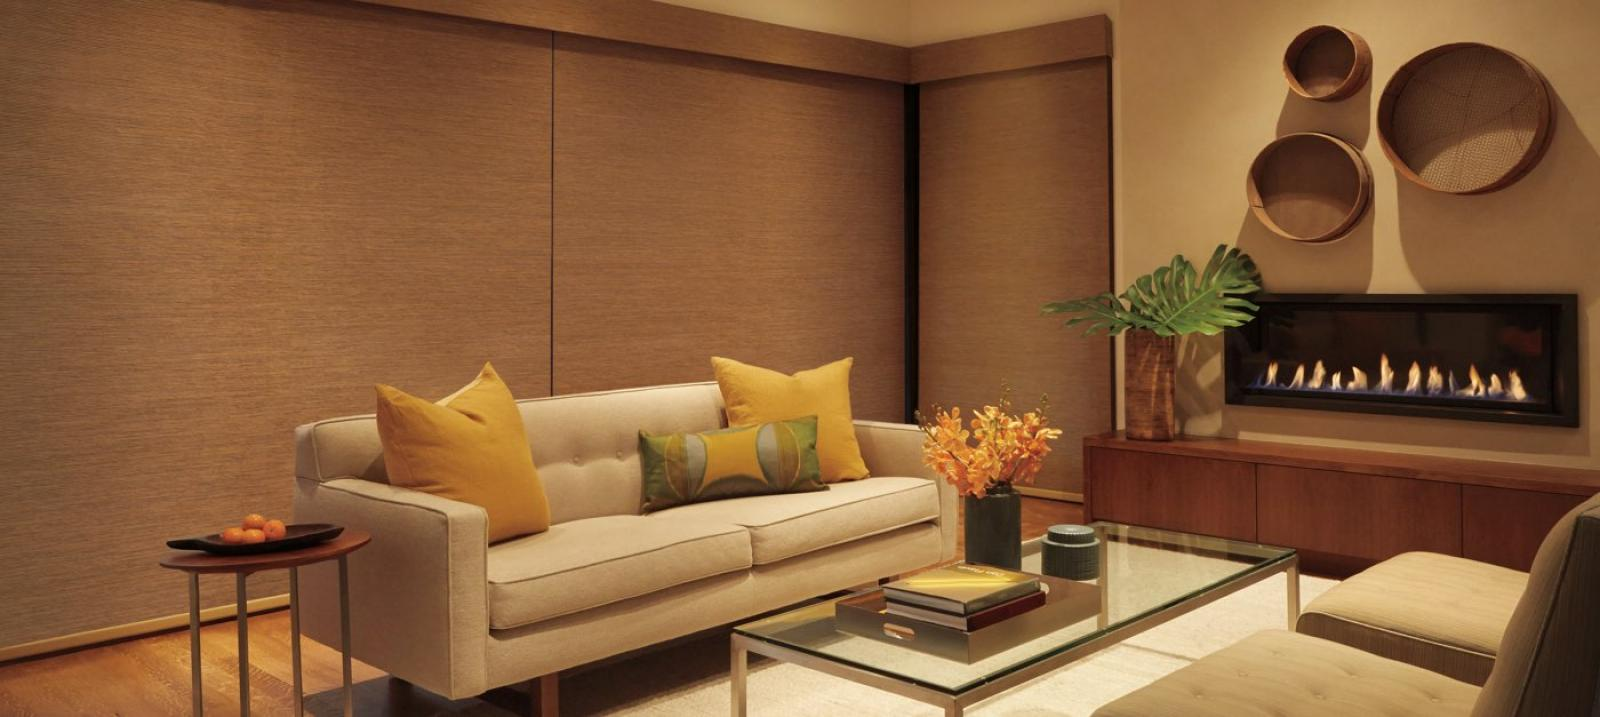 Designer Roller Shades in Sandalwood